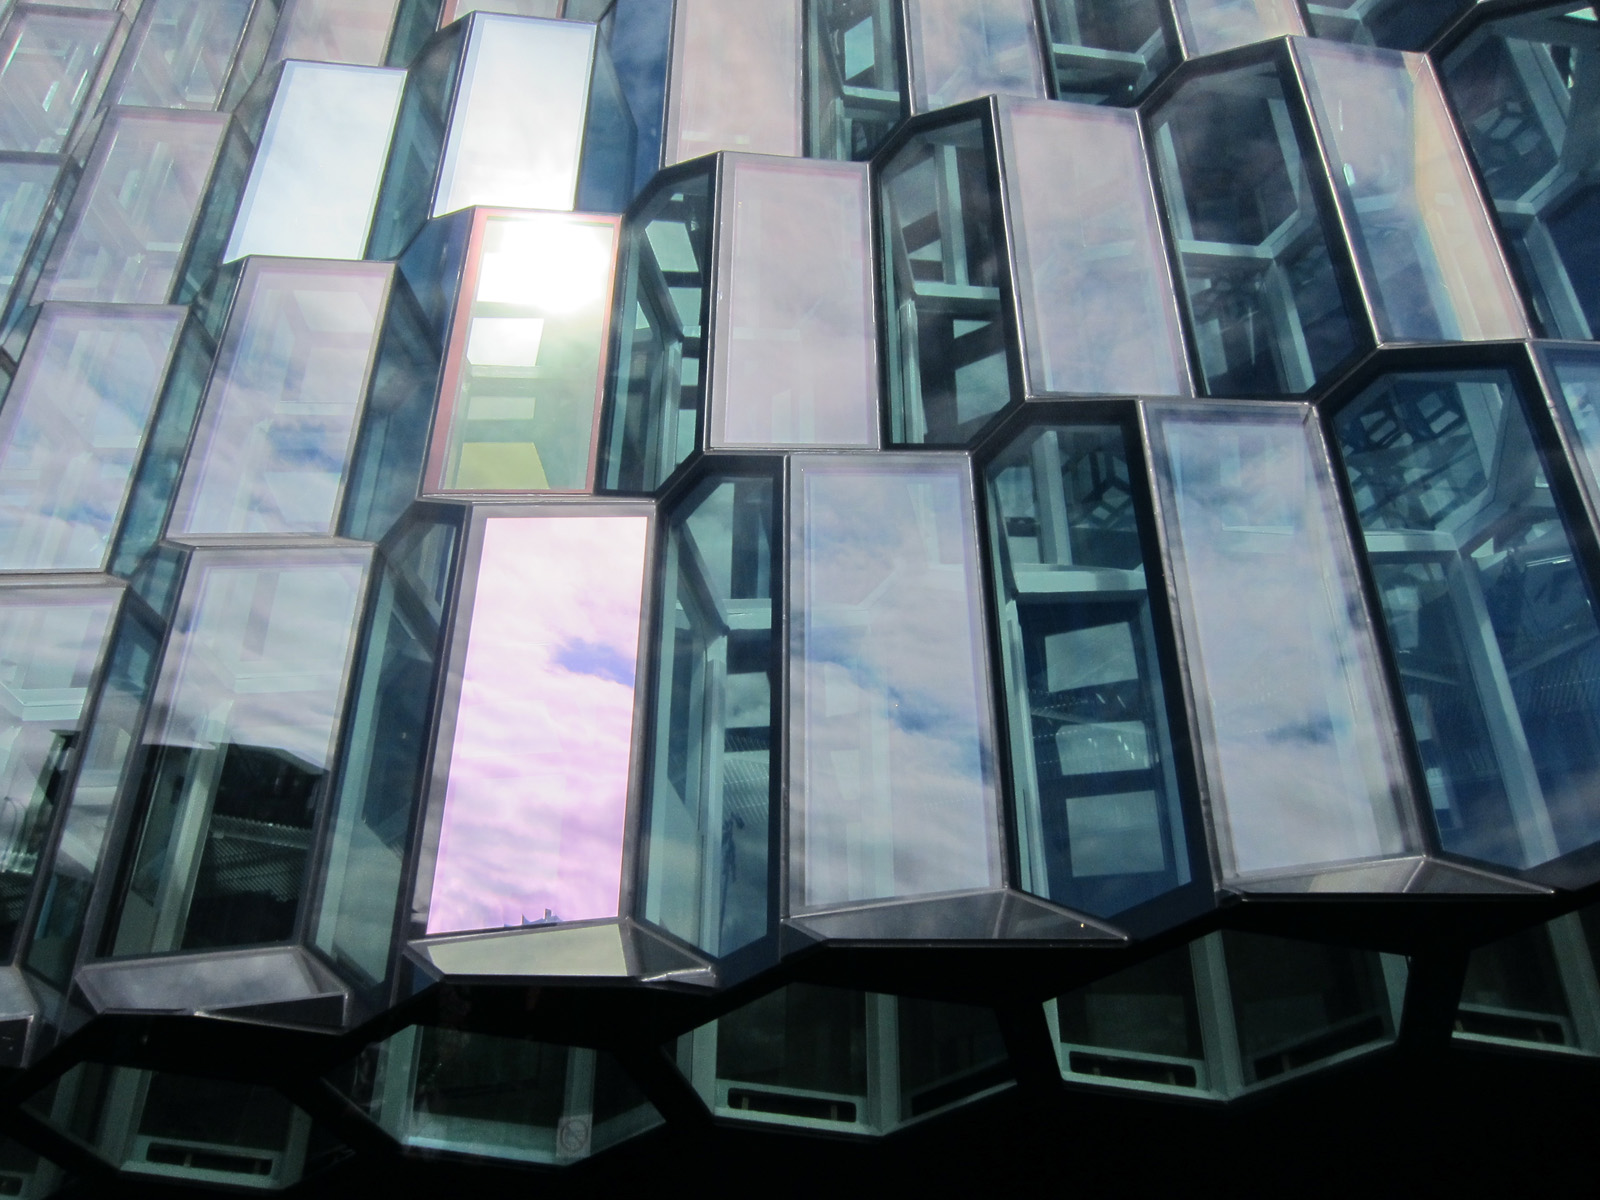 Sky mirrored in the Harpa facade